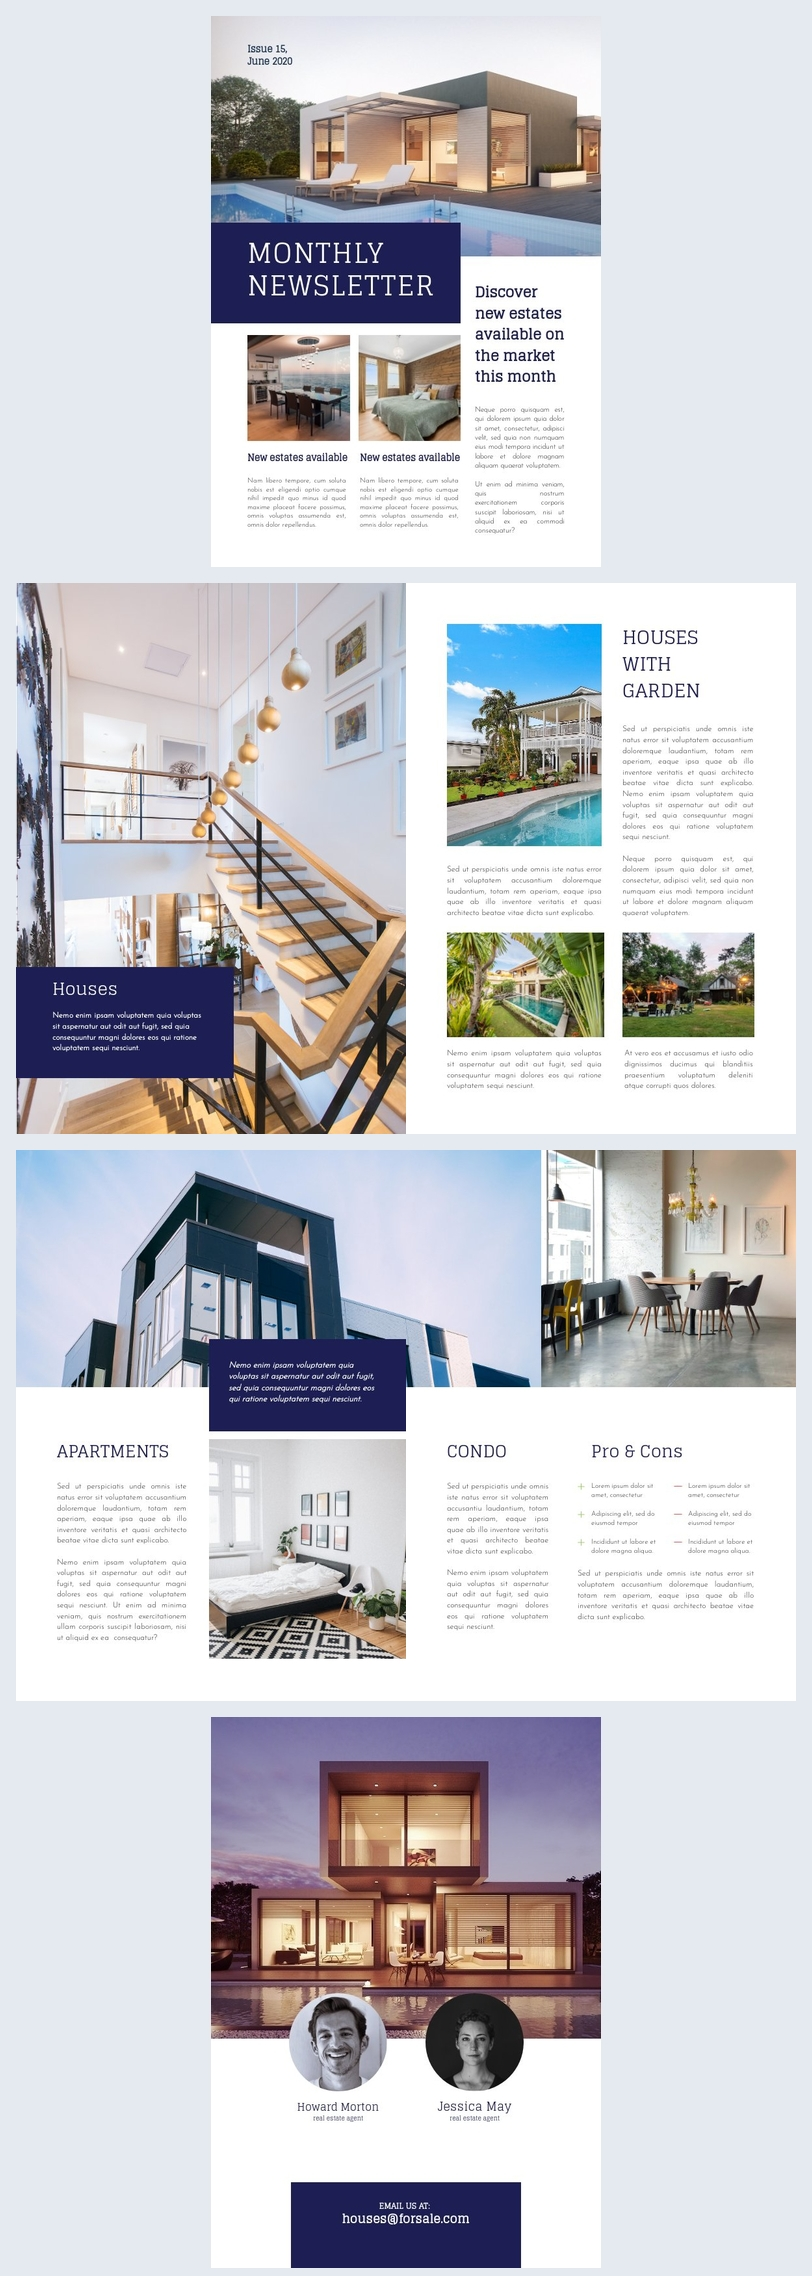 Real Estate Newsletter Design Idea